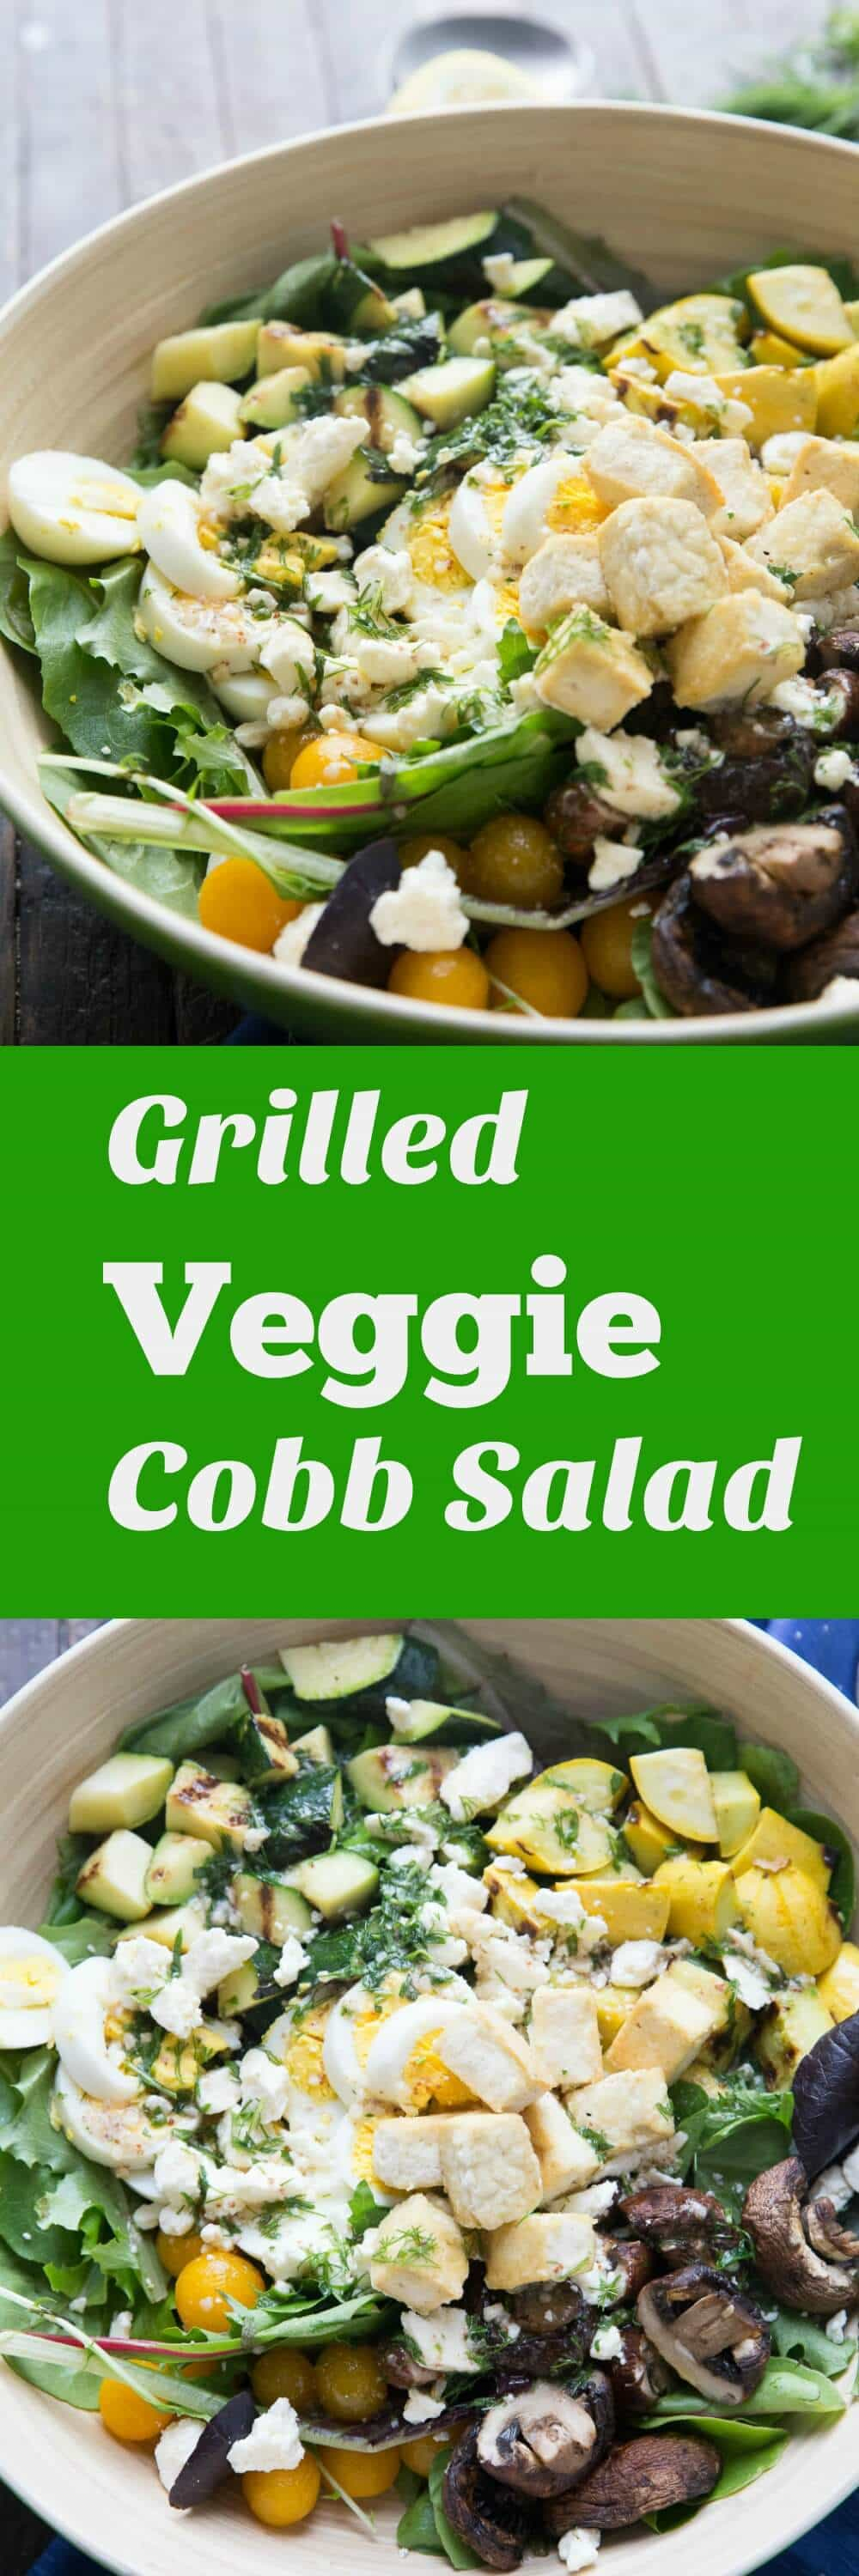 Want to feel good about yourself? Then this veggie Cobb salad is what you want! The flavor in this salad will have you hooked! lemonsforlulu.com